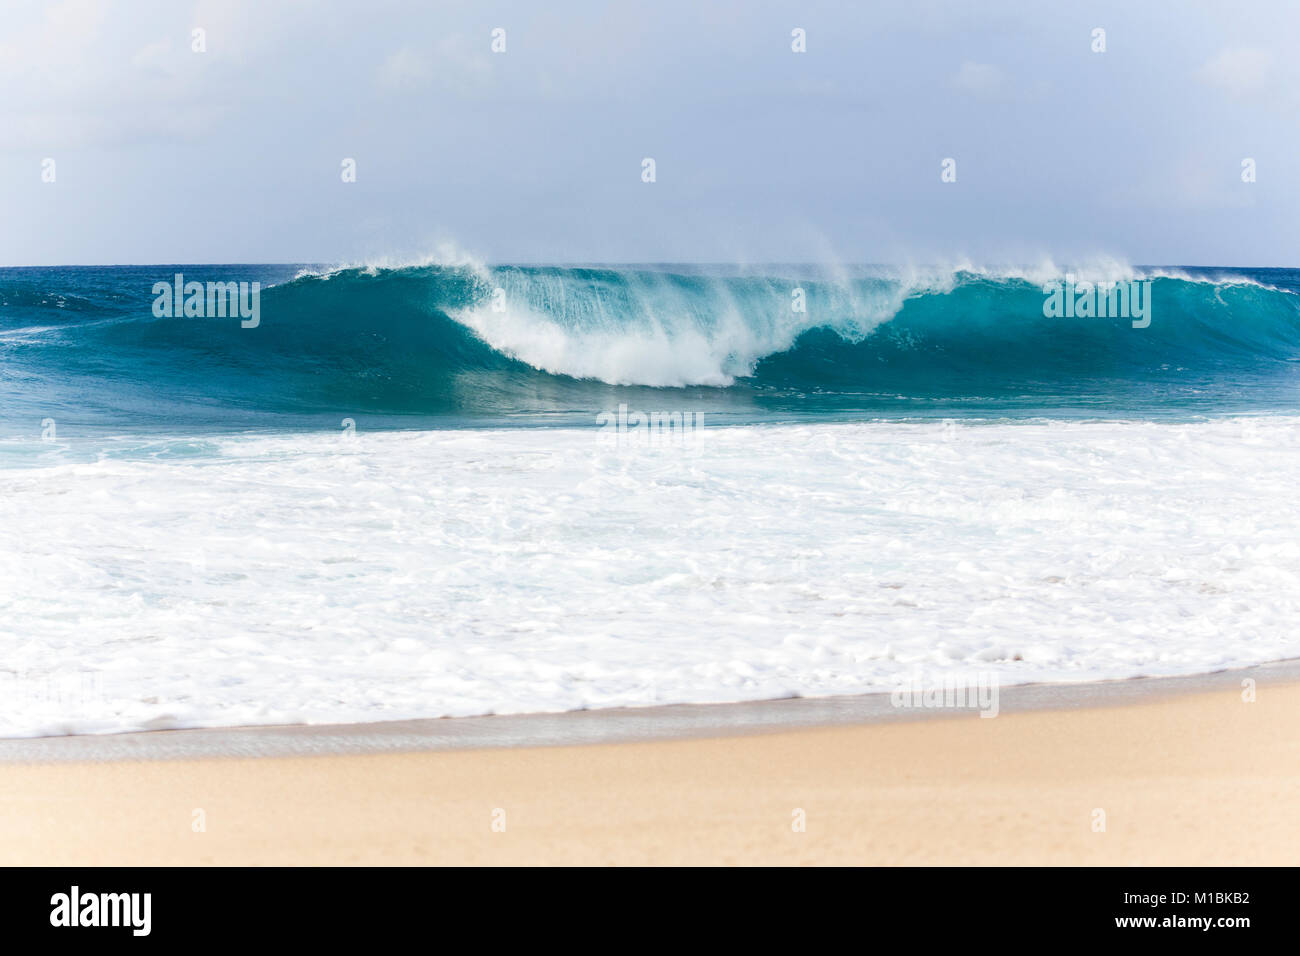 nearshore barrels of the Banzai Pipeline, Northshore, Hawaii - Stock Image